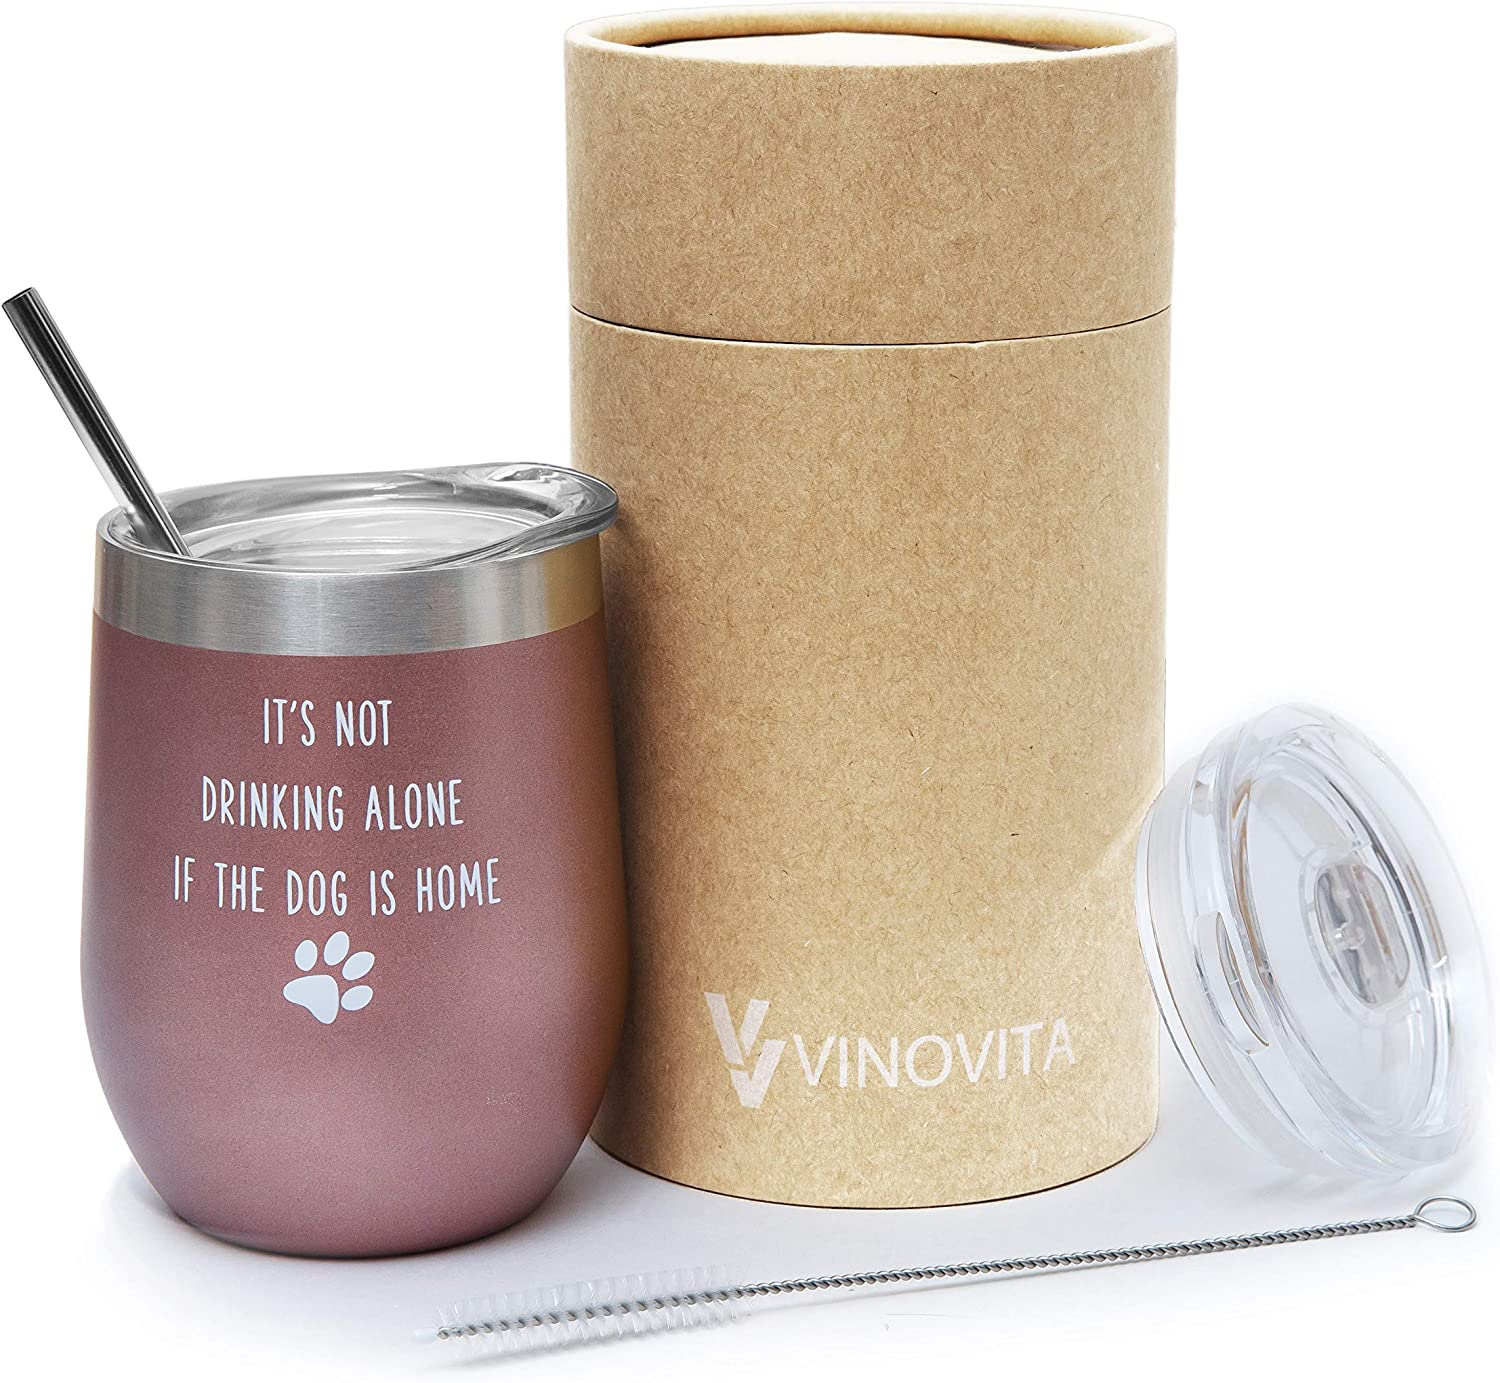 It's Not Drinking Alone if the Dog is Home – VINOVITA Stainless-Steel Funny Wine Tumbler – Insulated Stemless Wine Glass with 2 Lids, Straw, Brush – Perfect For Christmas, Birthday – 12oz